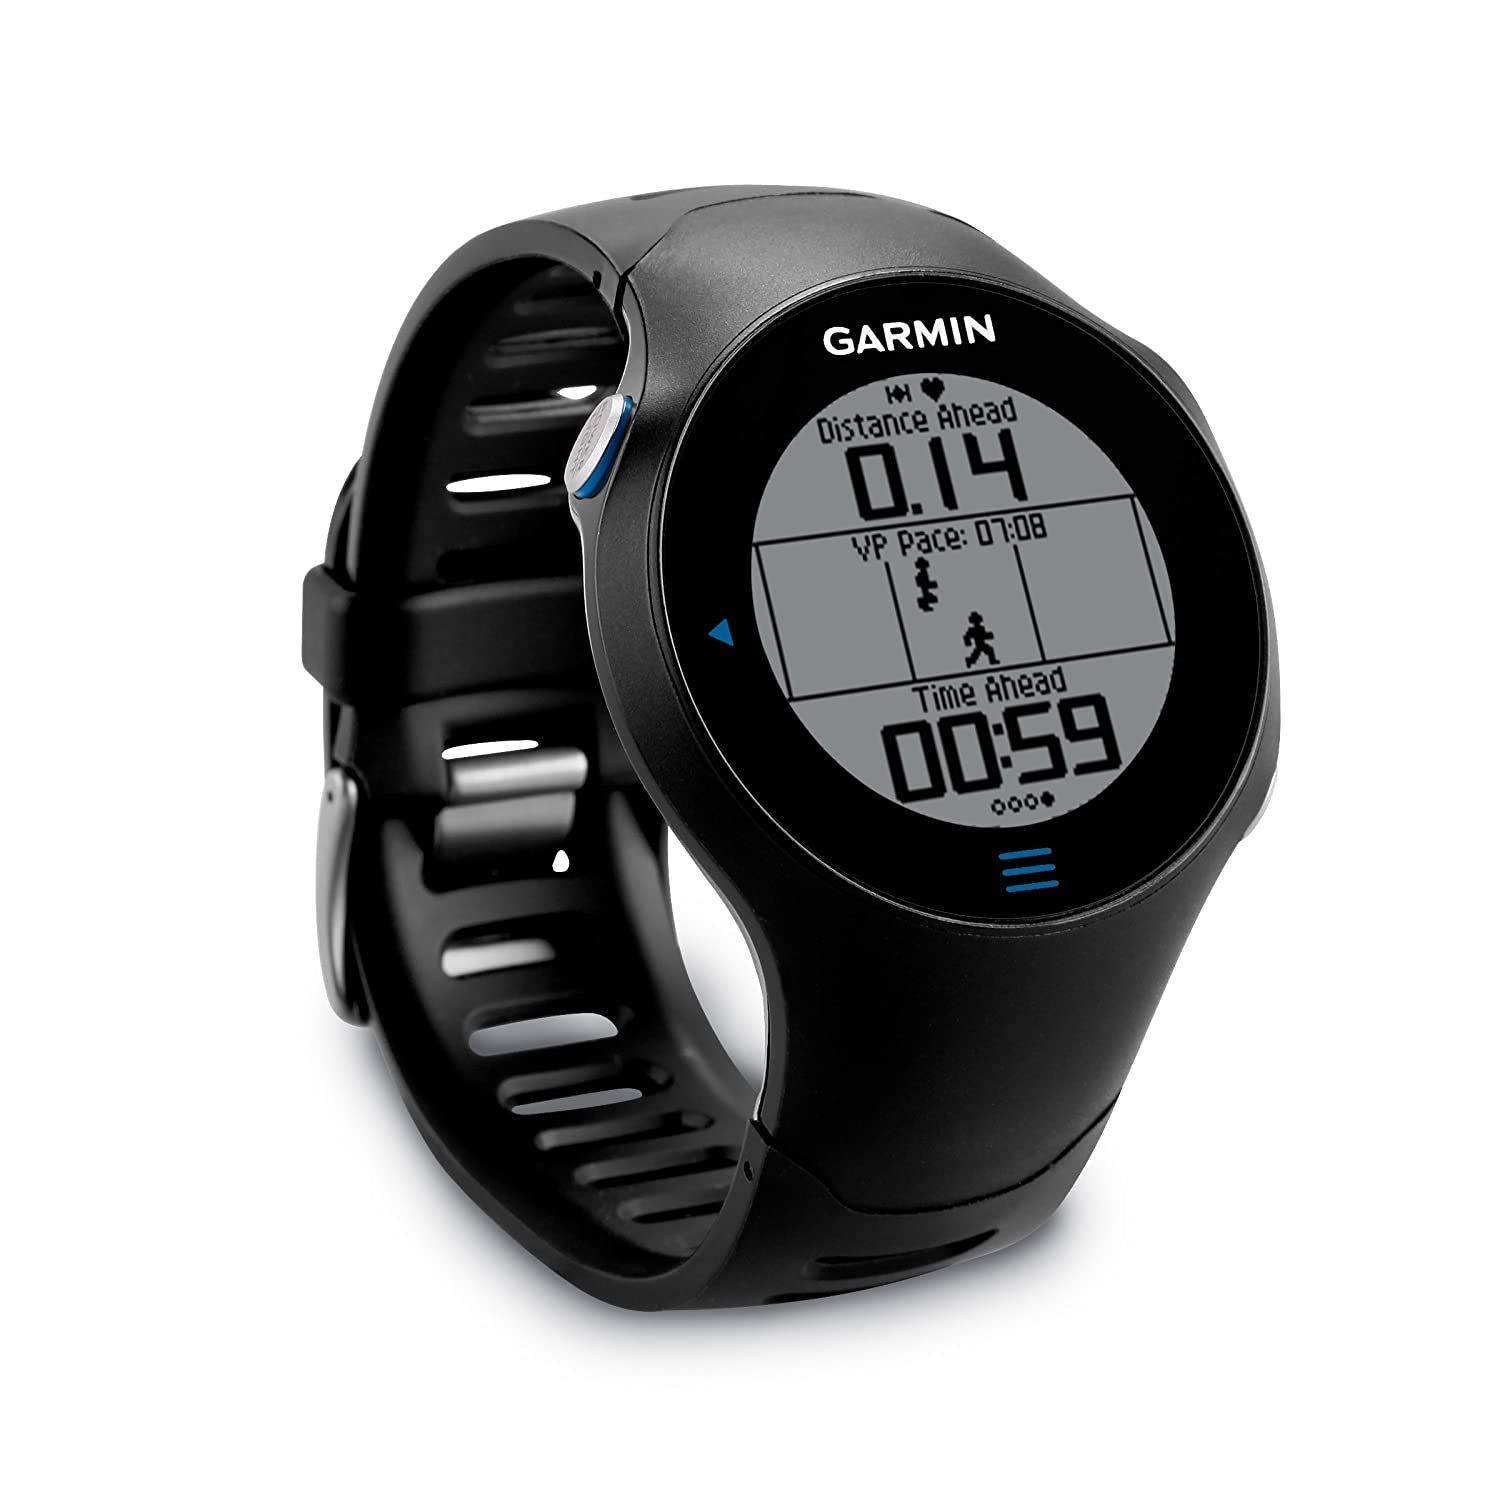 watch garmin fenix buy rate canada gps sapphire multisport heart monitor category with best watches en edition sport ca glass black running